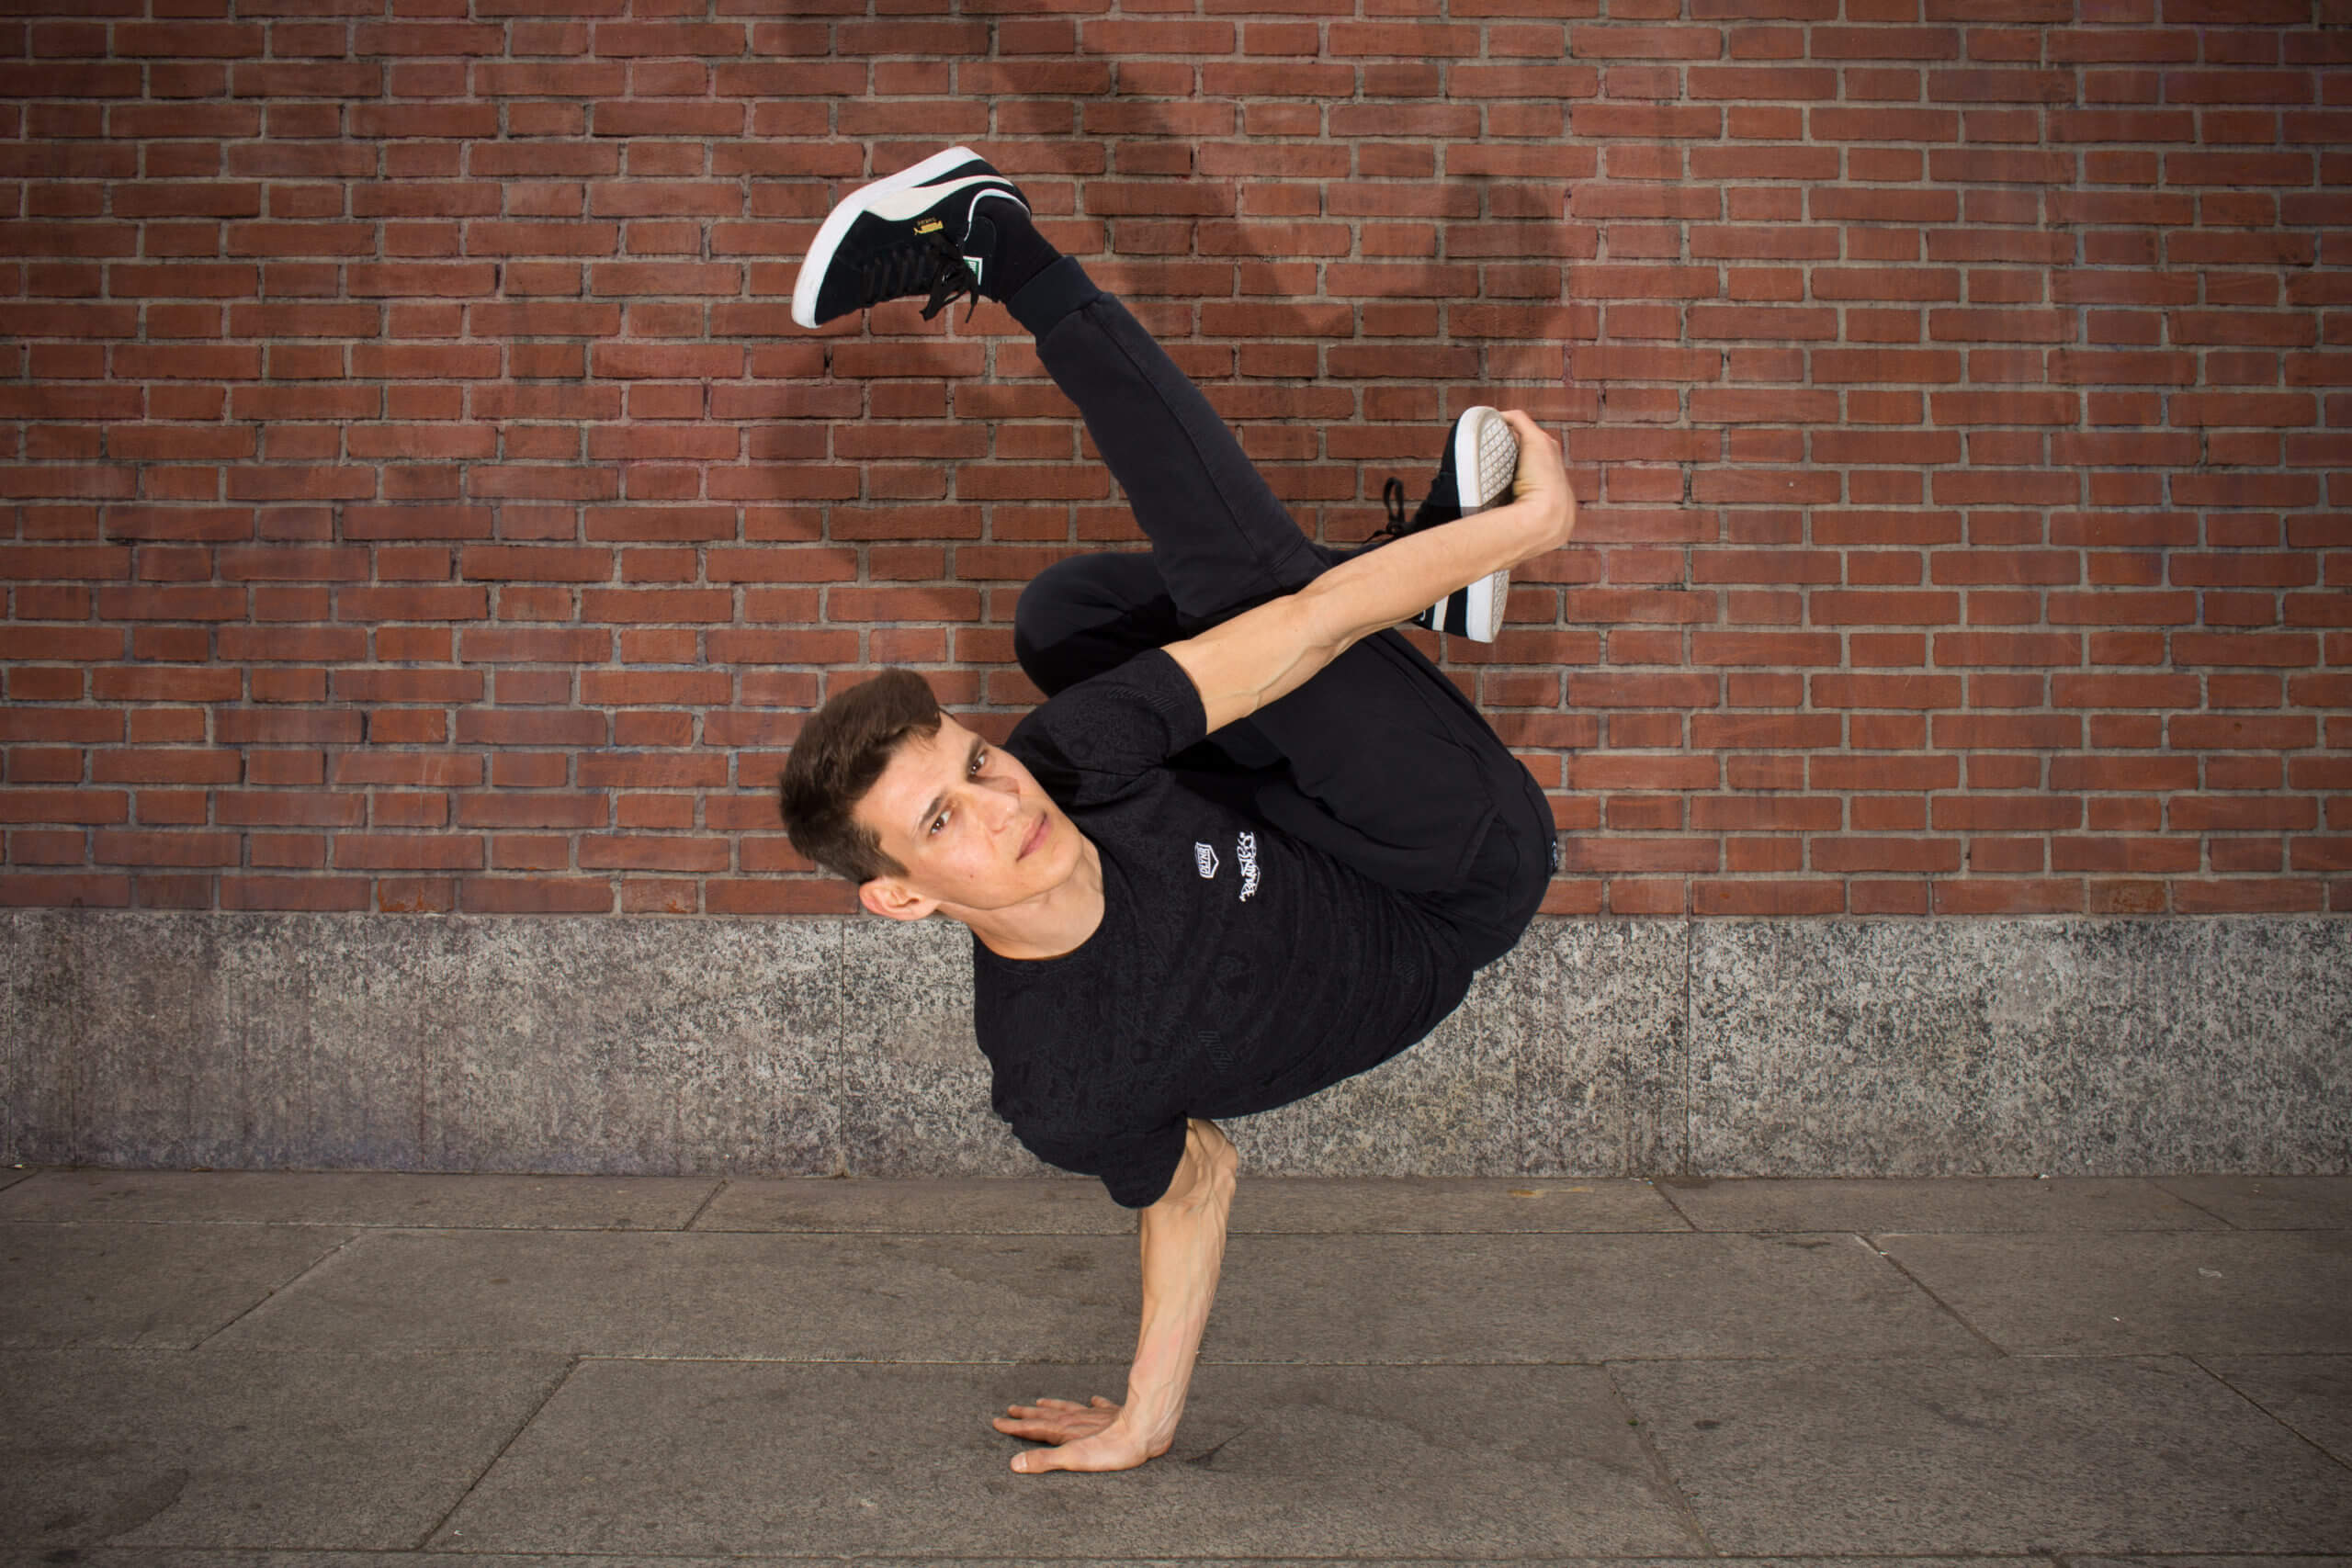 Breakdance-milano-ballerino-hiphop-danza-Mad Lucas